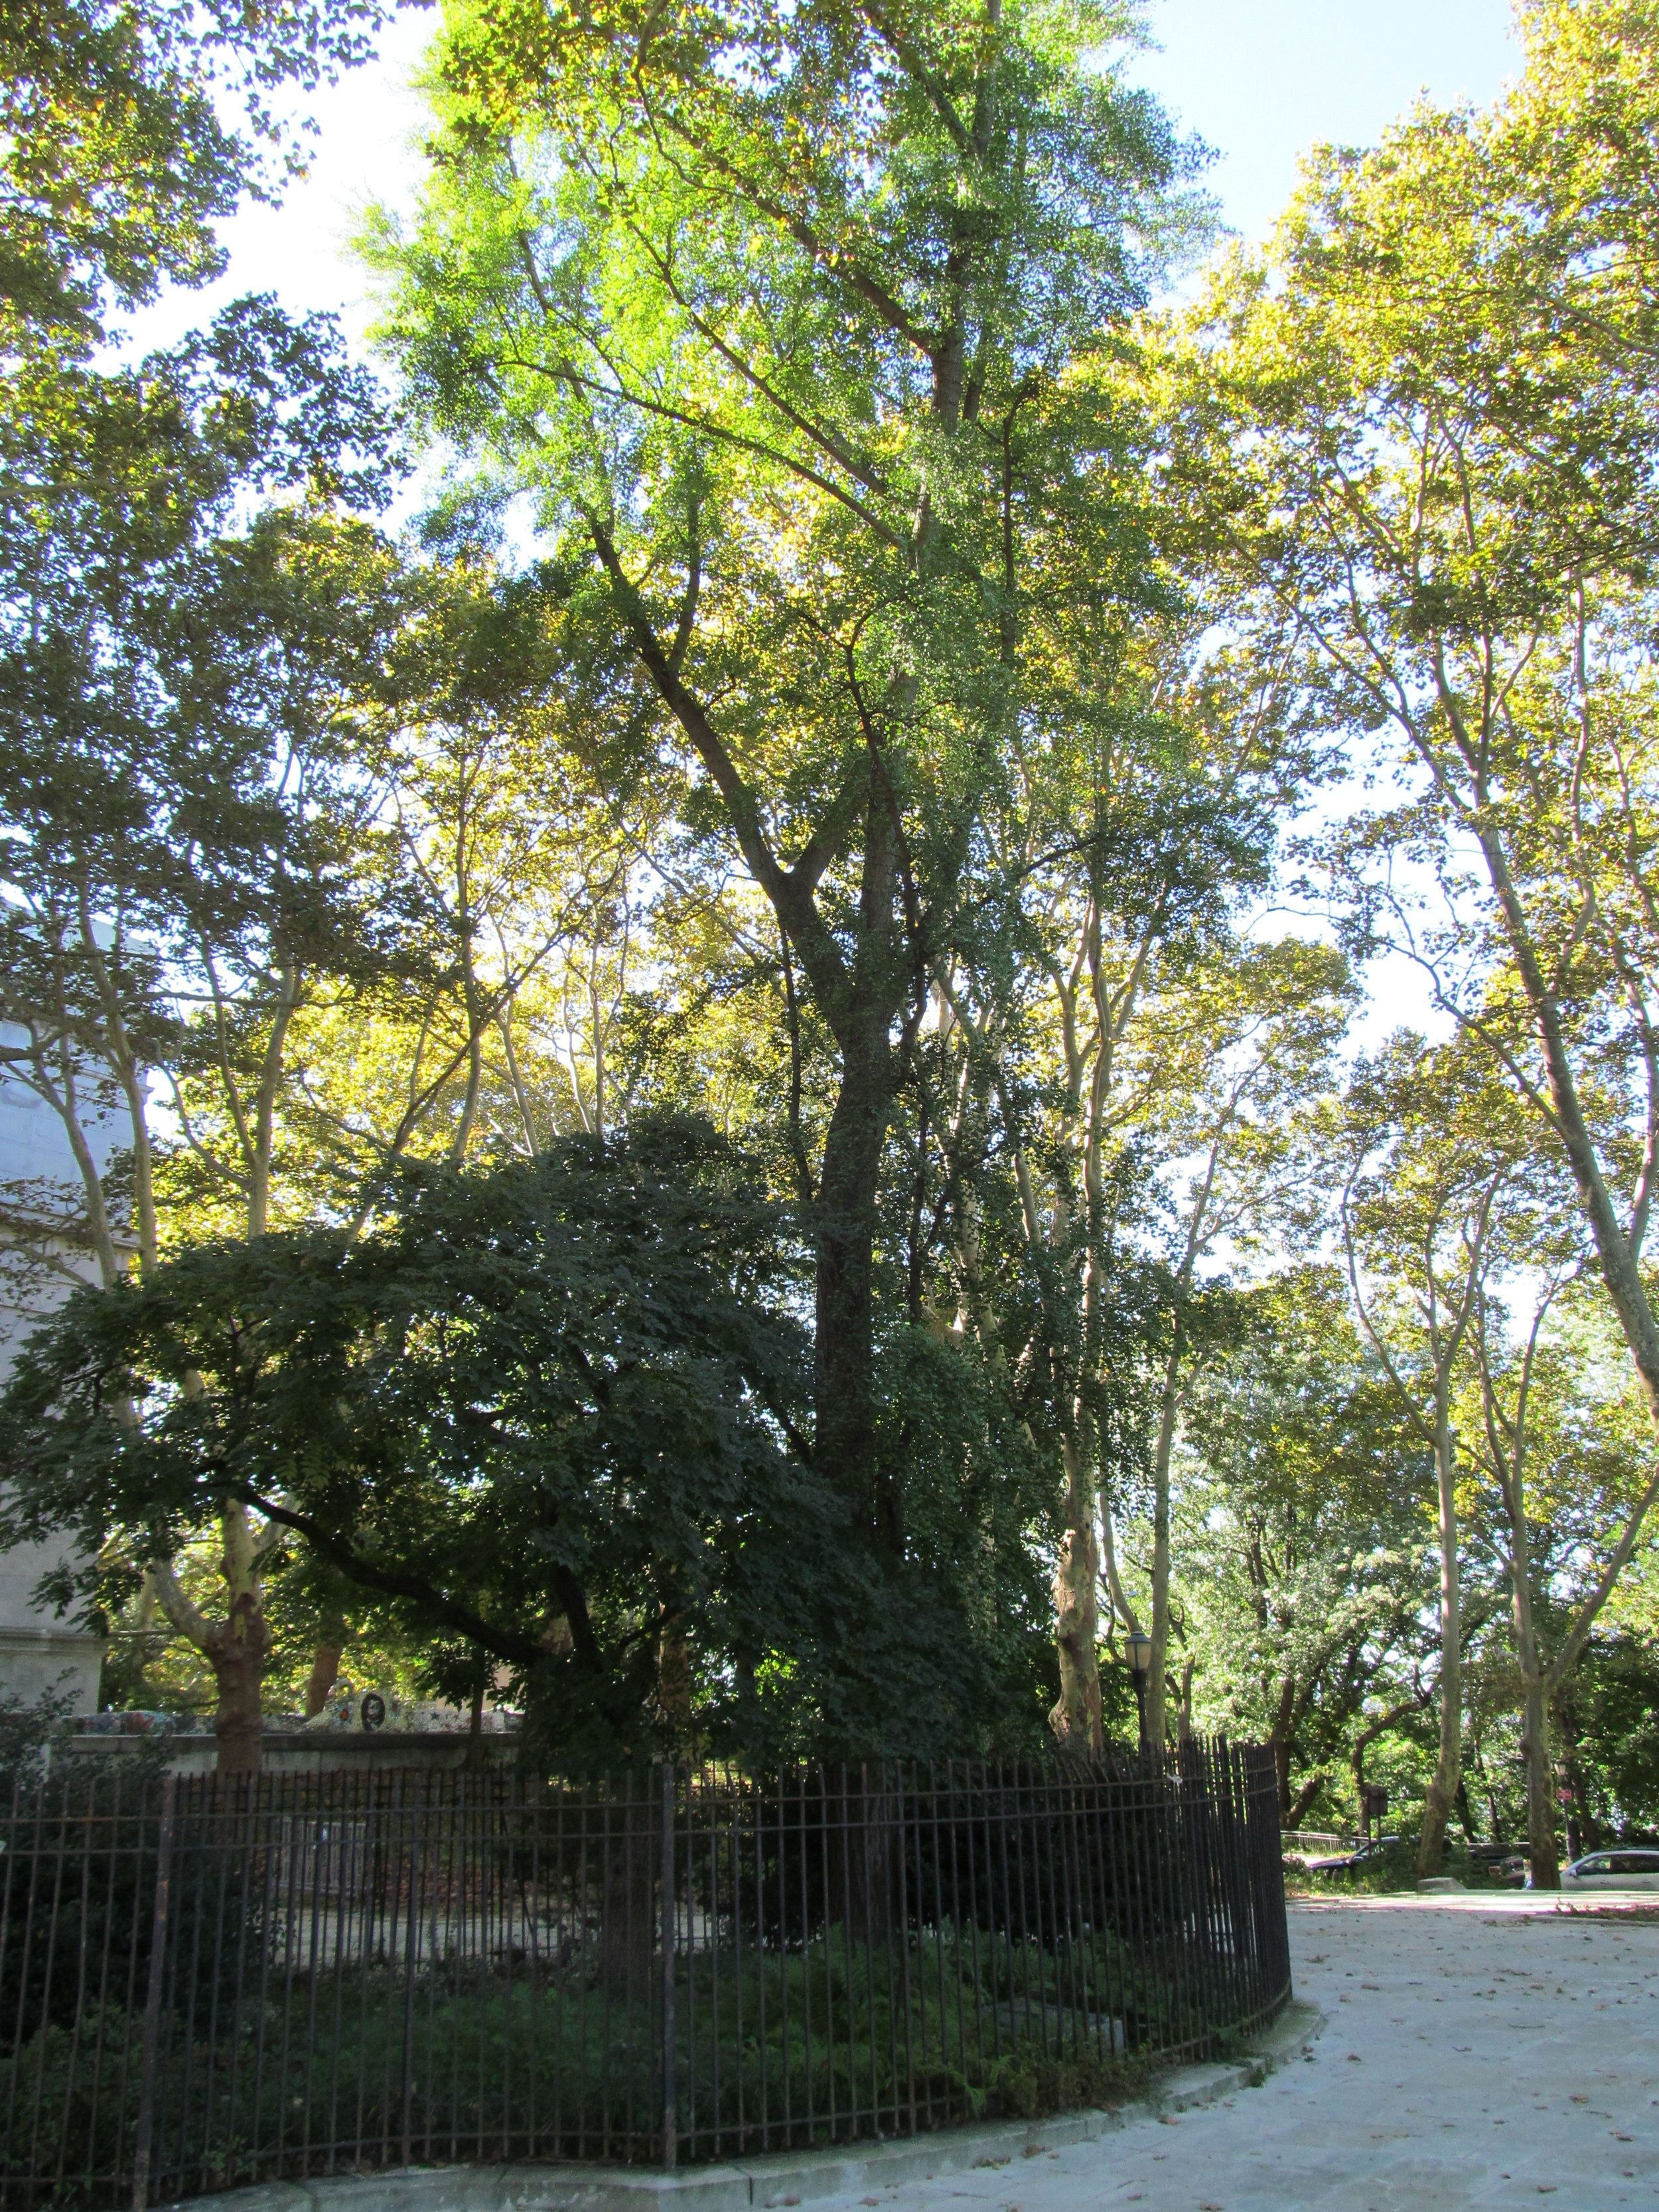 Ginkgo tree at Grant's Tomb in NYC